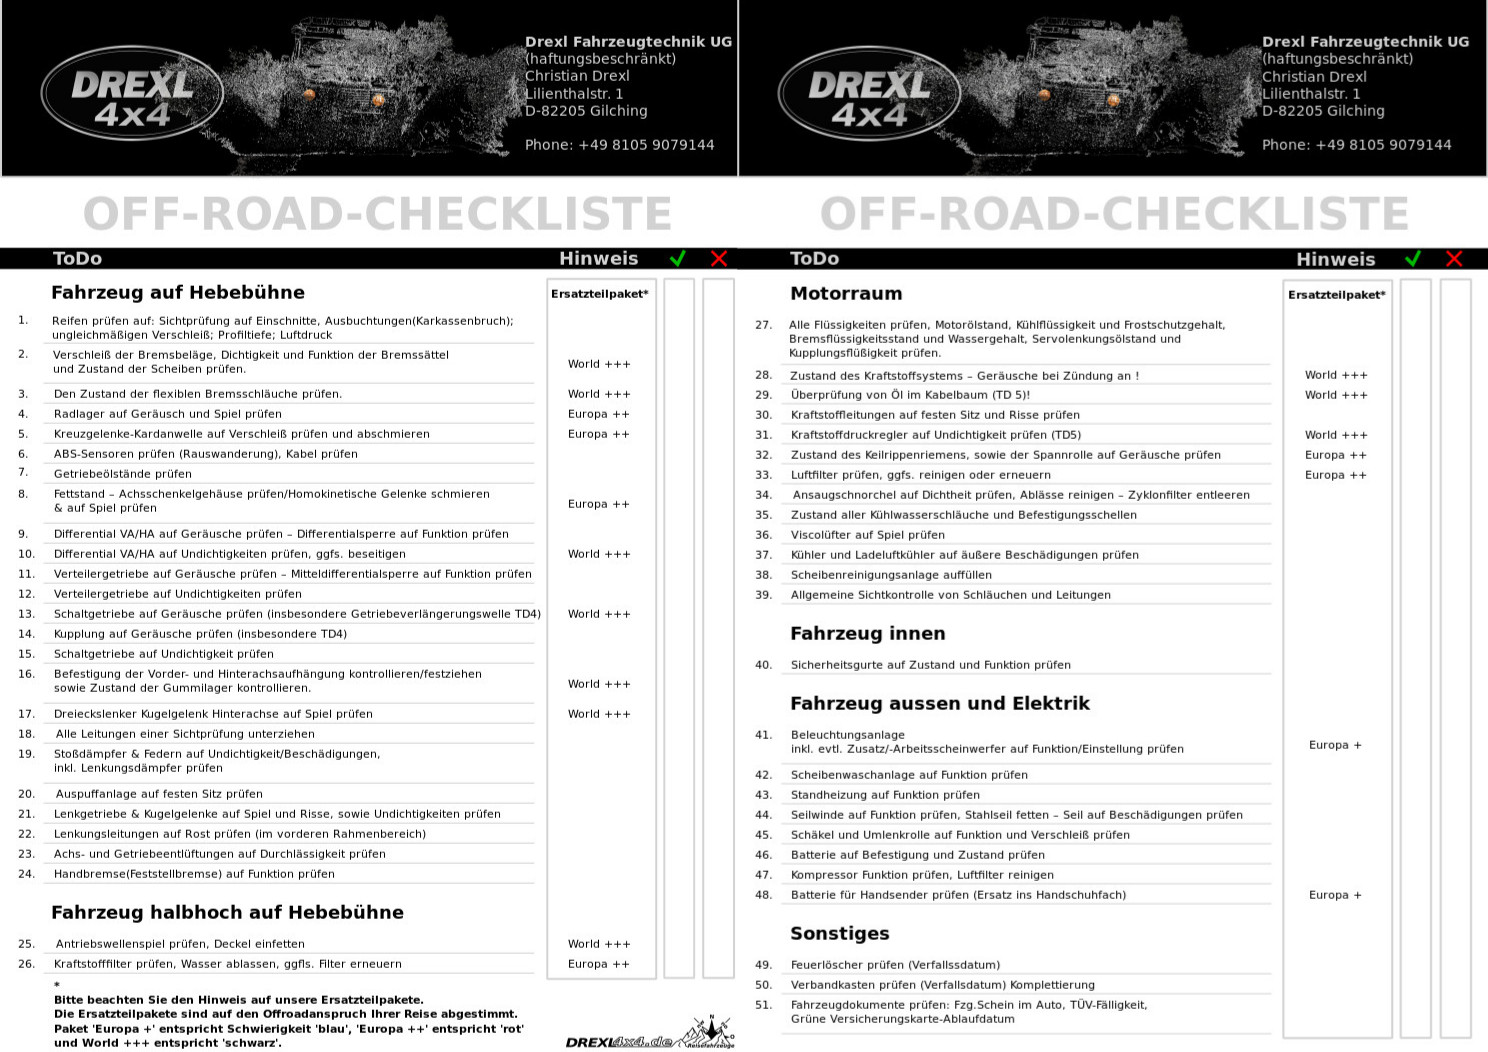 screenshot des Flyers Offroad-Checkliste